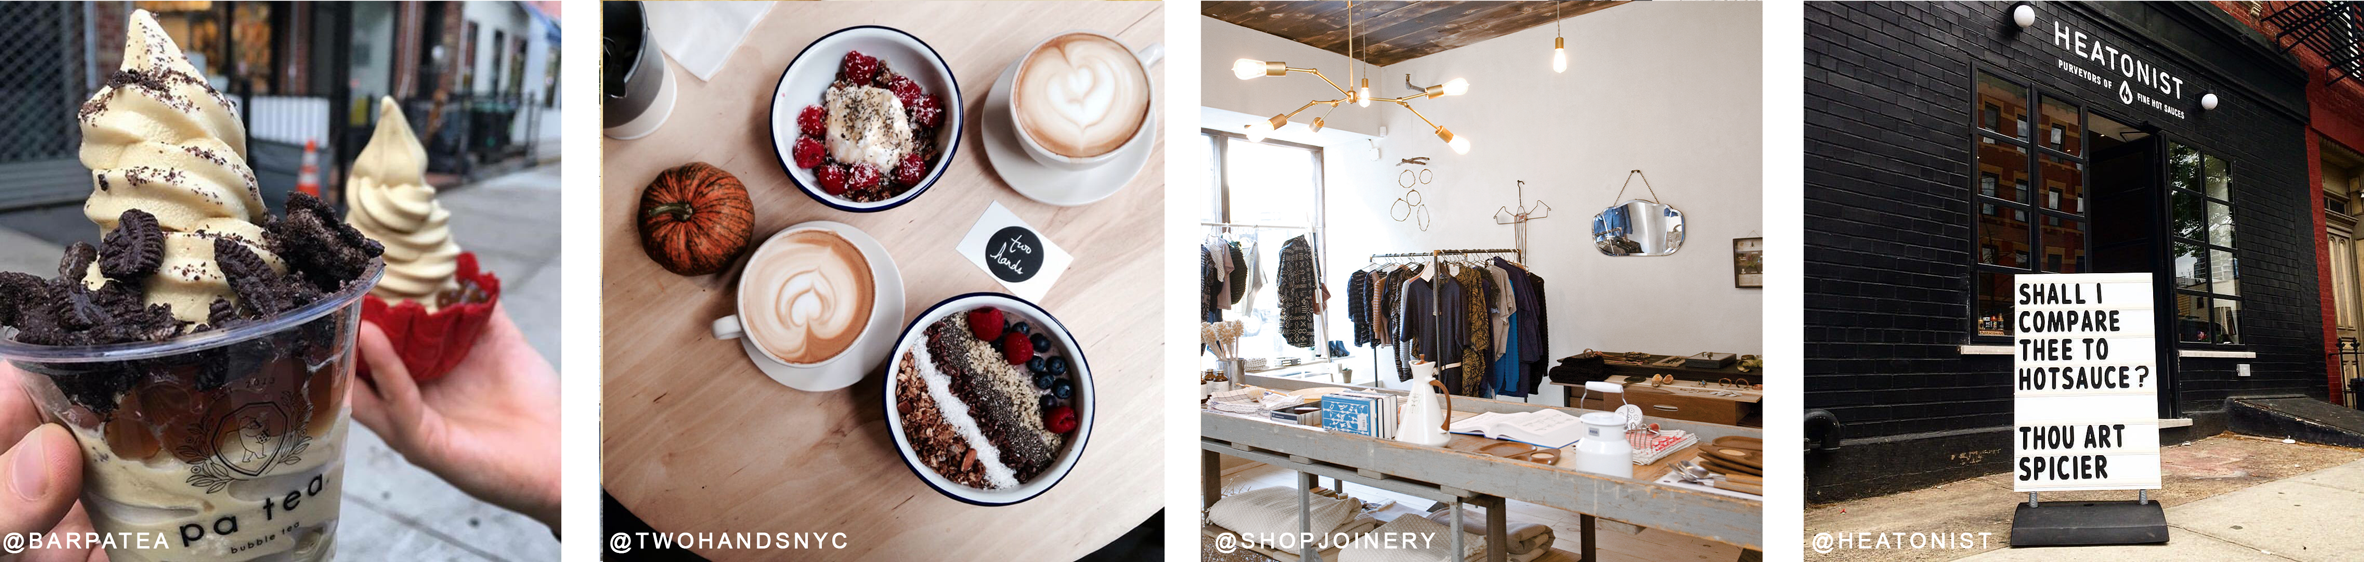 Small Biz Saturday - Planoly Blog - 3